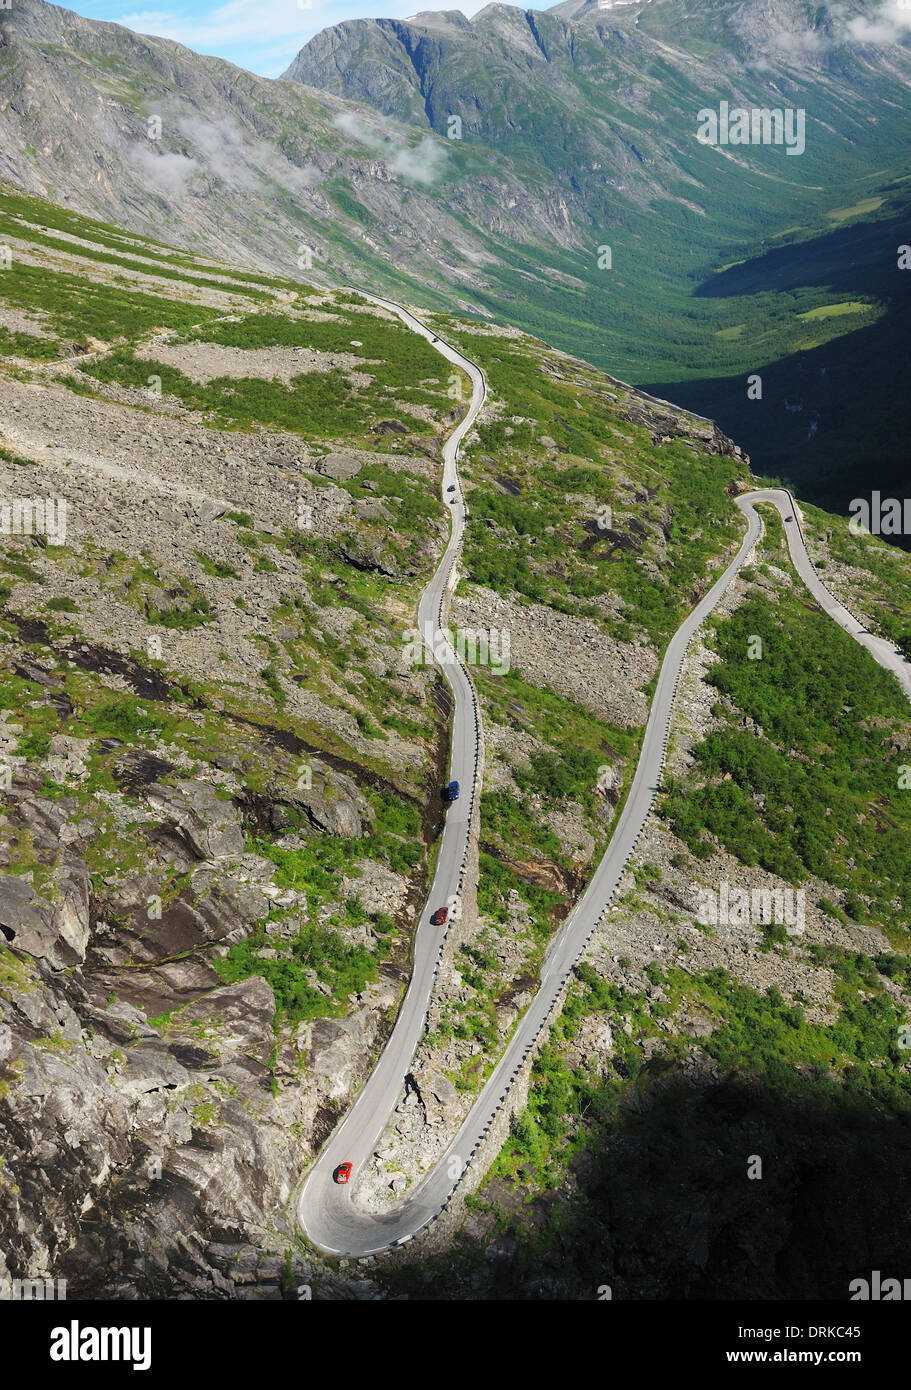 Mountain slope with the serpentine road Trollstigen - Stock Image